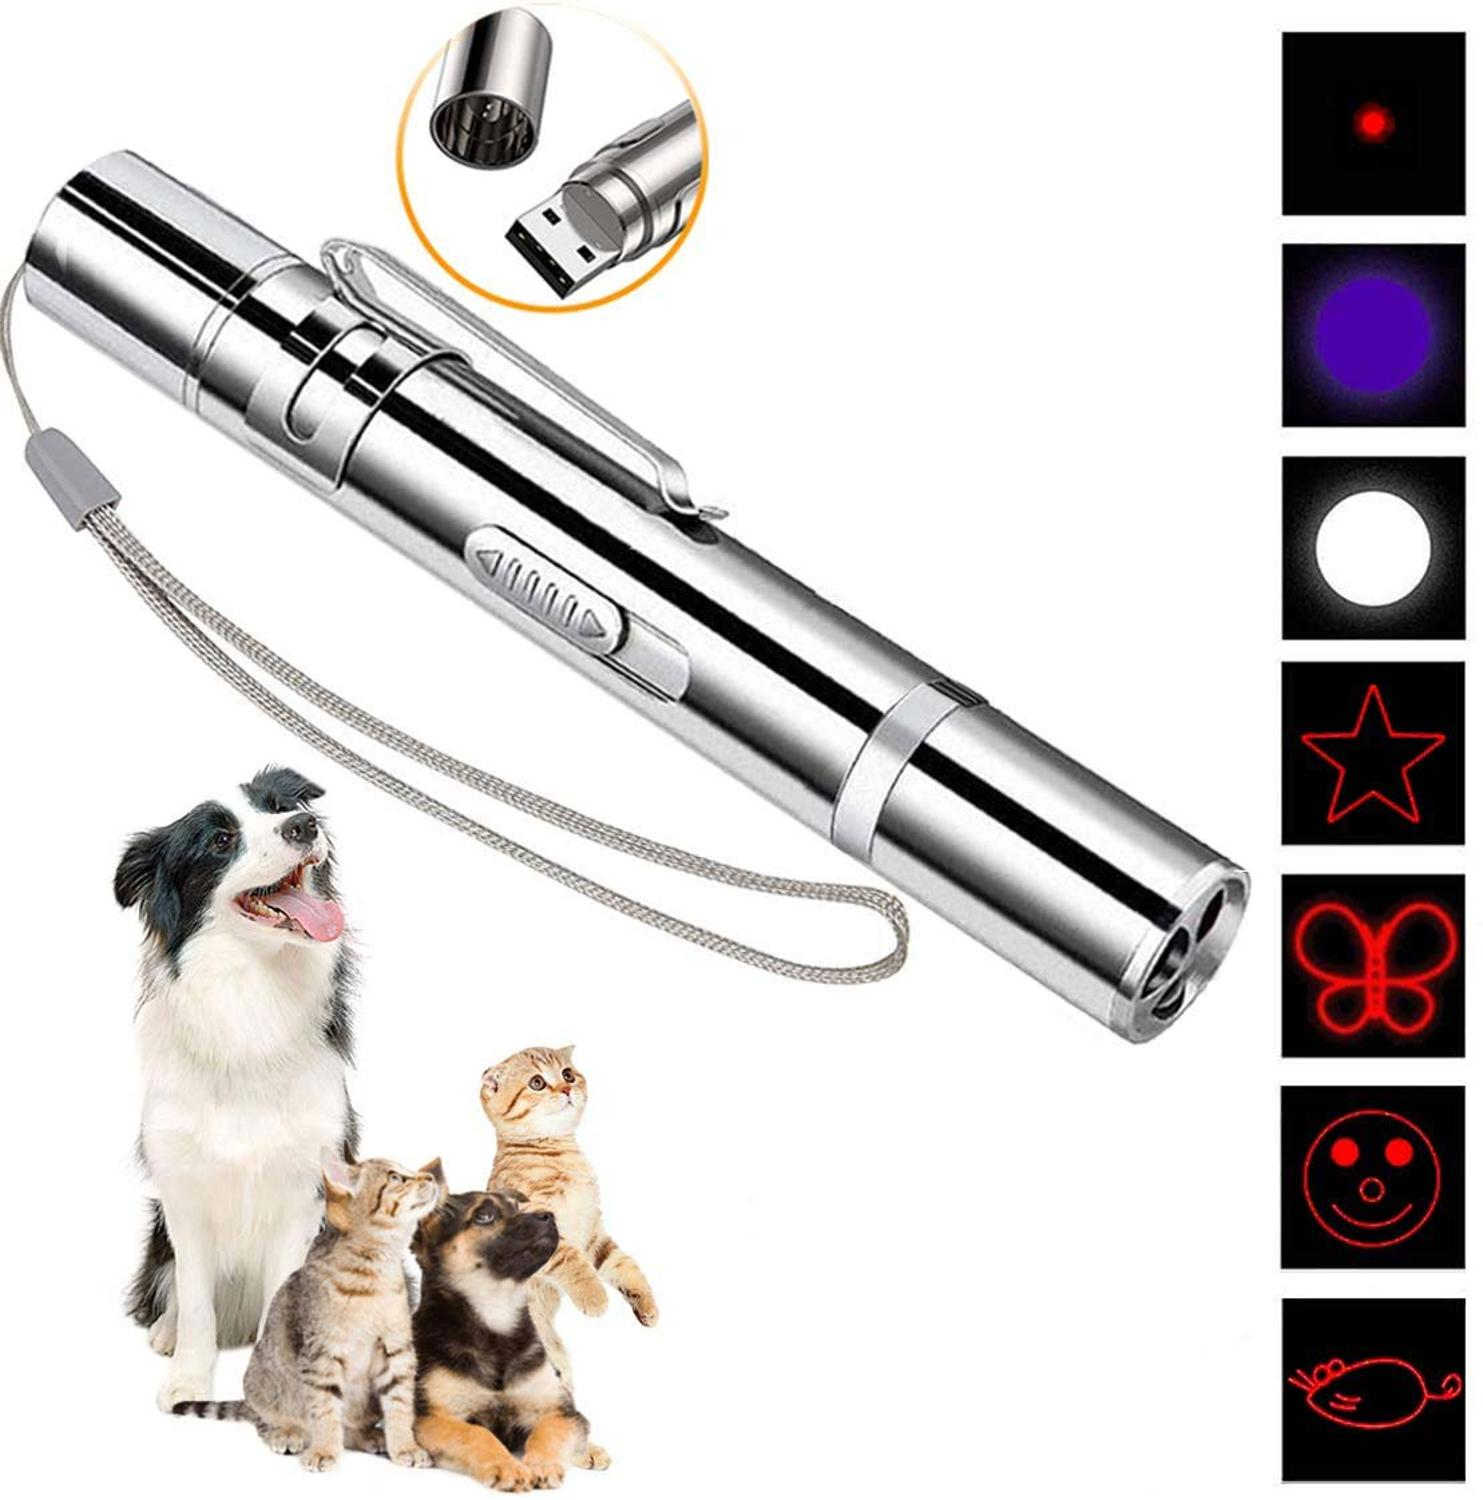 Mini Laser Pointer USB Rechargeable 7 In 1 Flashlight Rechargeable UV Flashlight Lazer Pen Powerpoint Multi-function Lasers